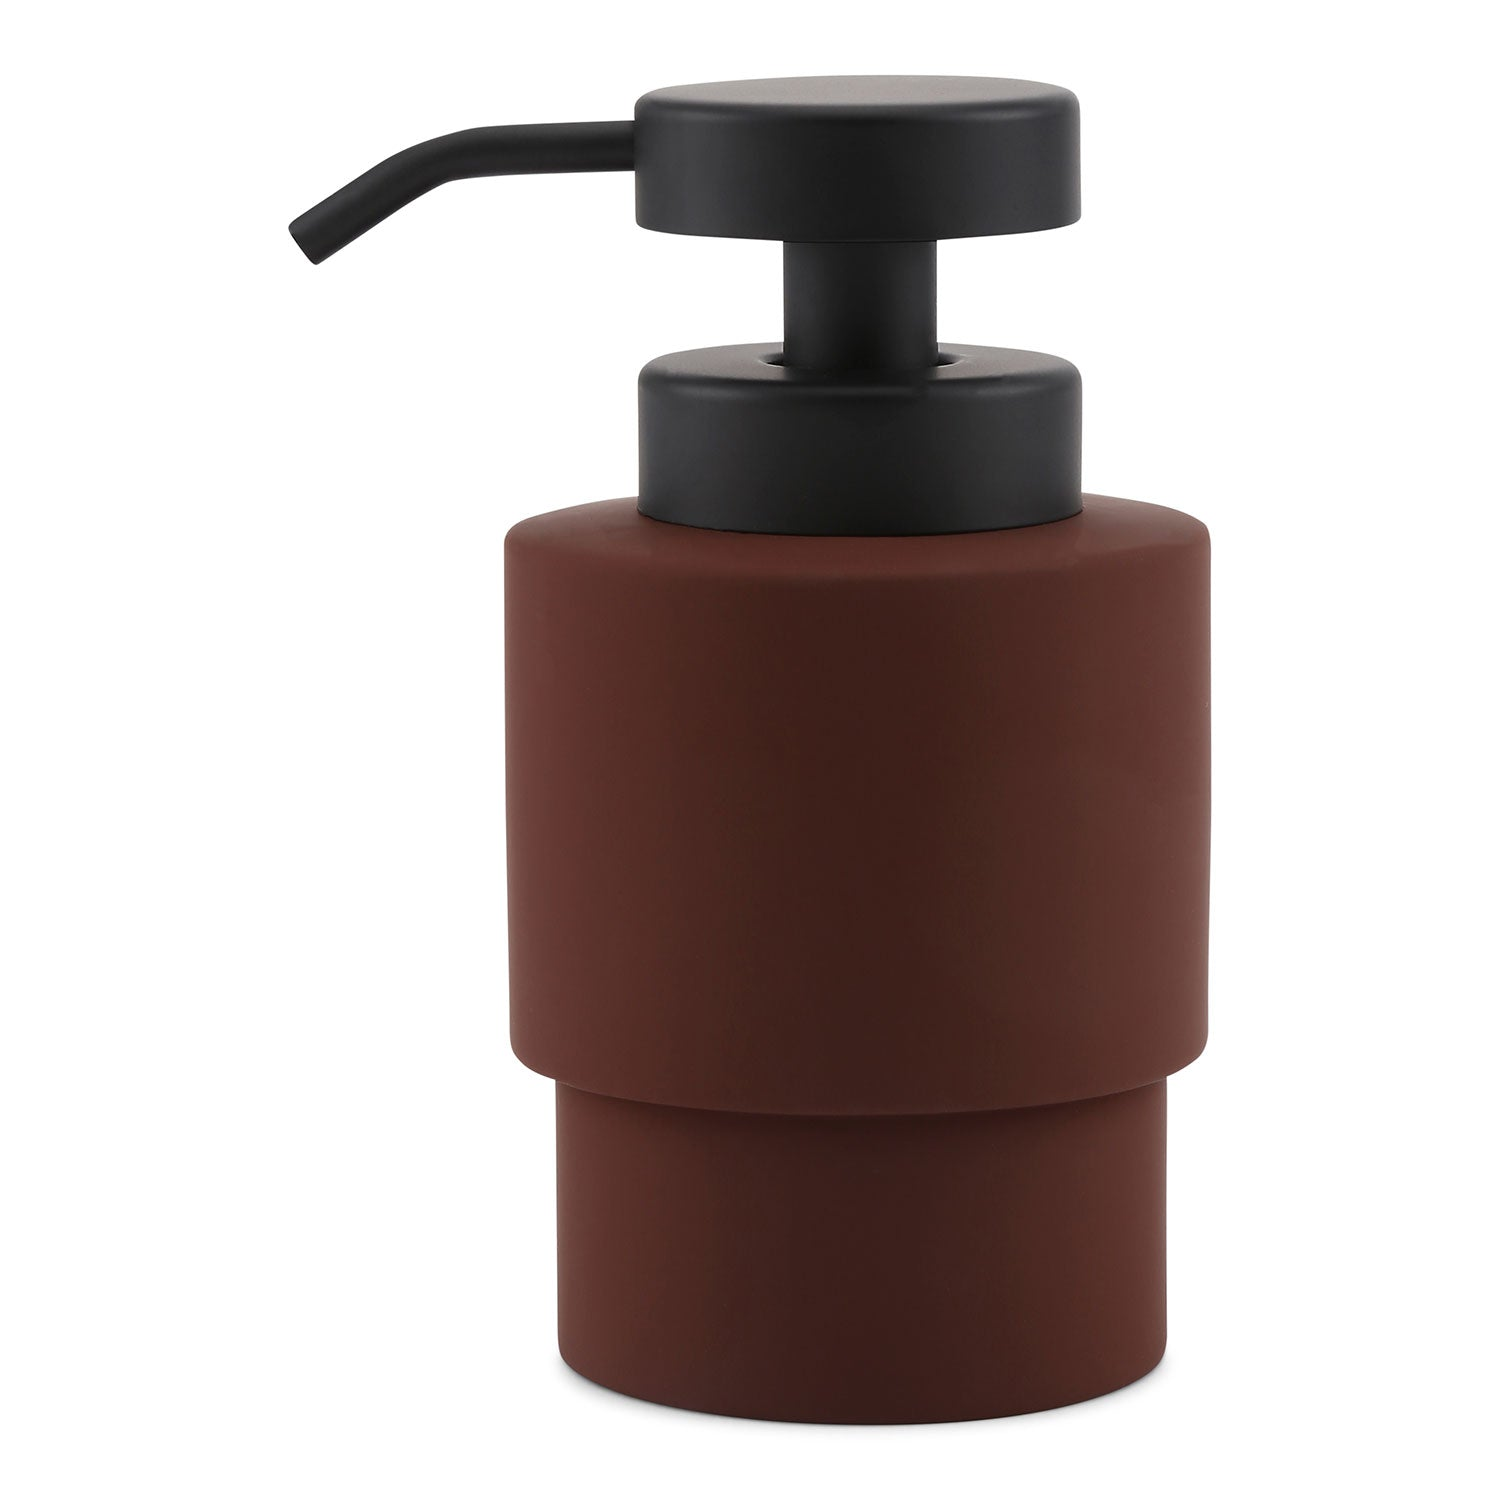 SHADES High Soap Dispenser- Wine